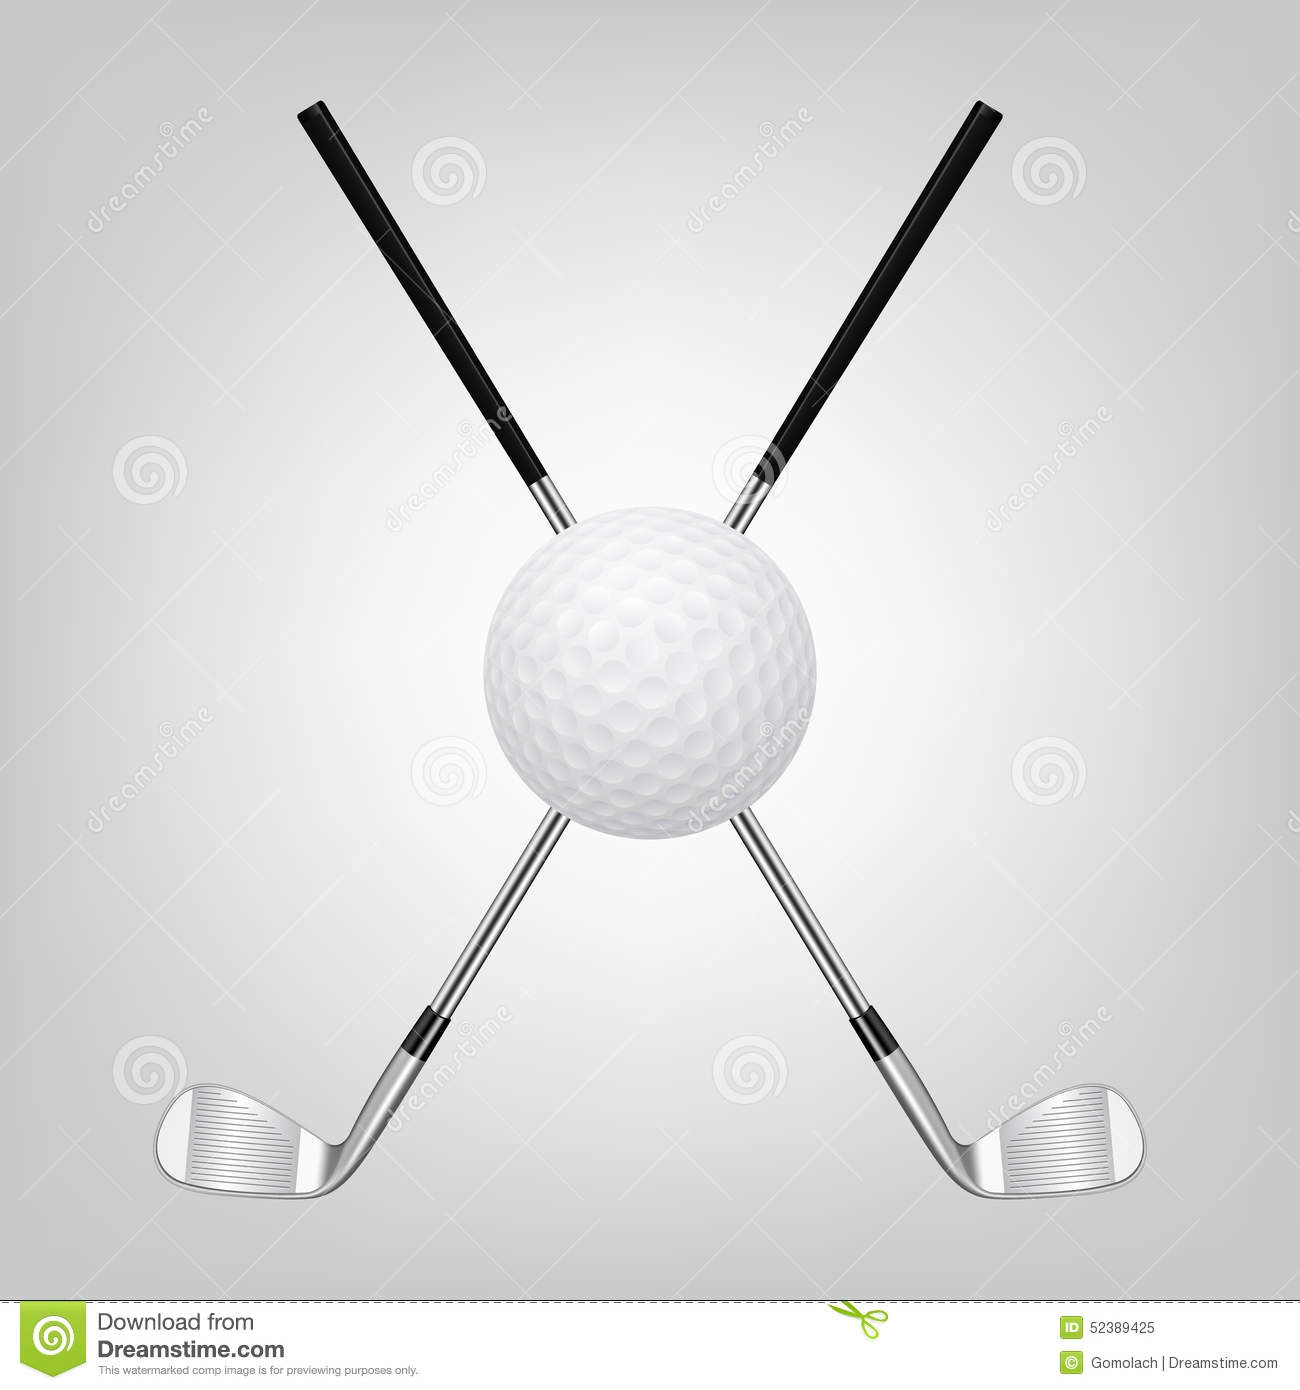 Golf Ball And Two Crossed Golf Clubs Stock Vector - Image ...